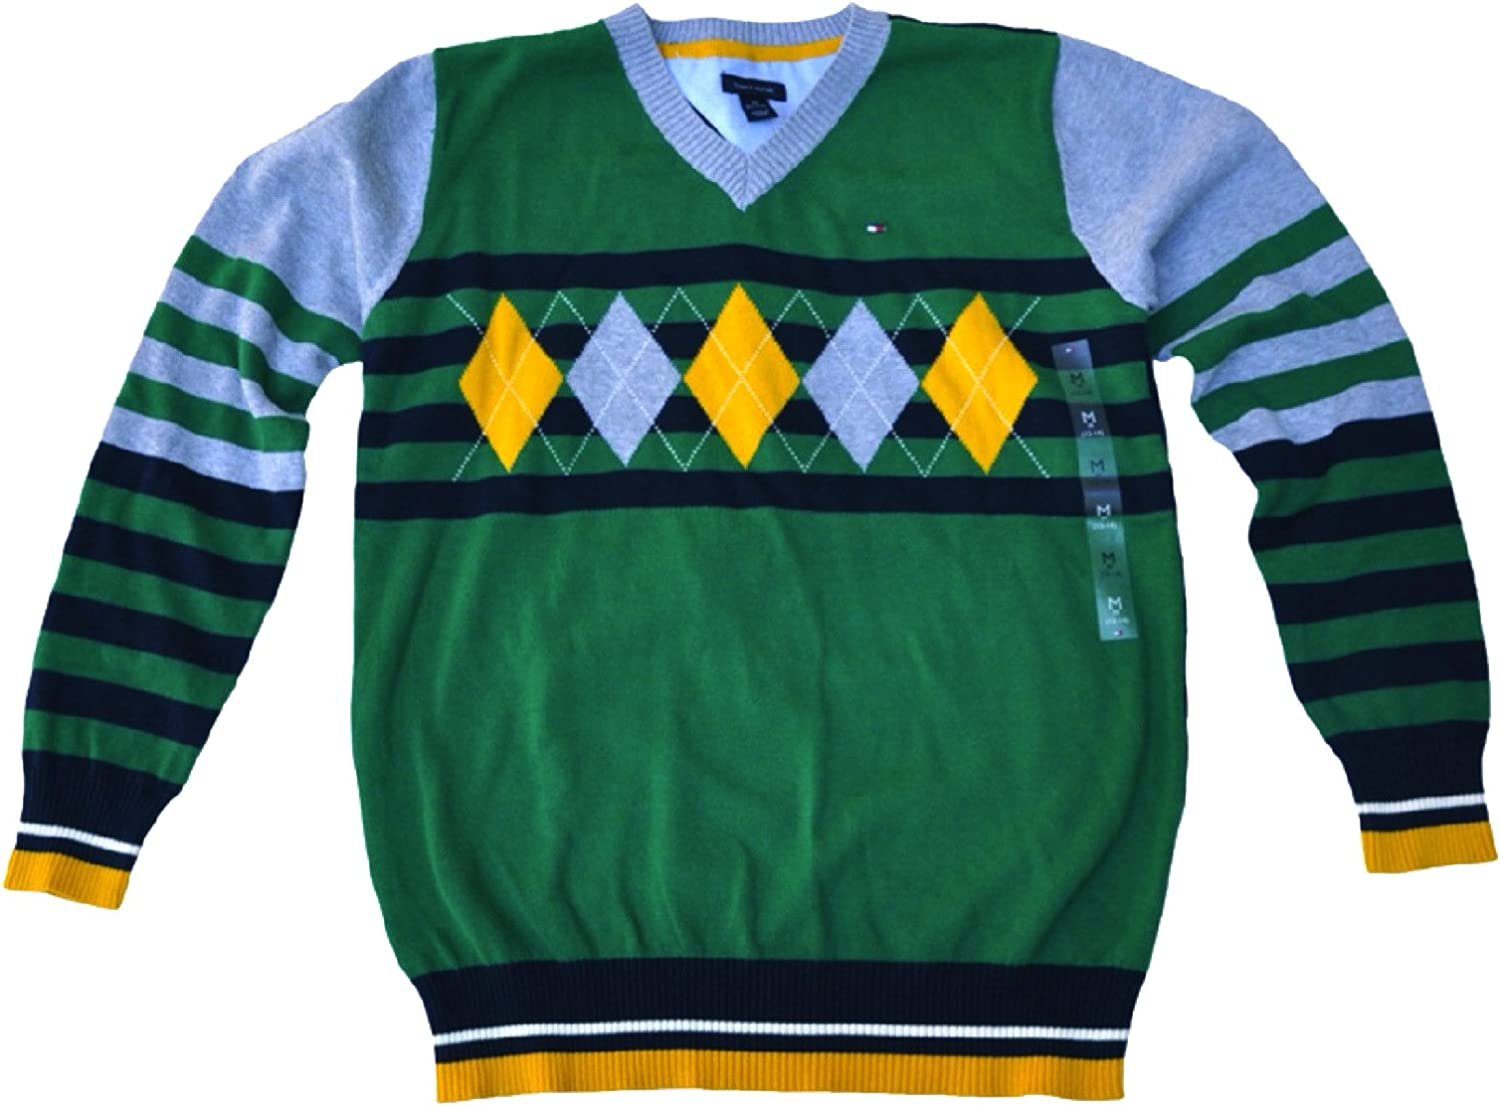 Tommy Hilfiger Boys Tulsa Mall Sweater All items free shipping V-Neck